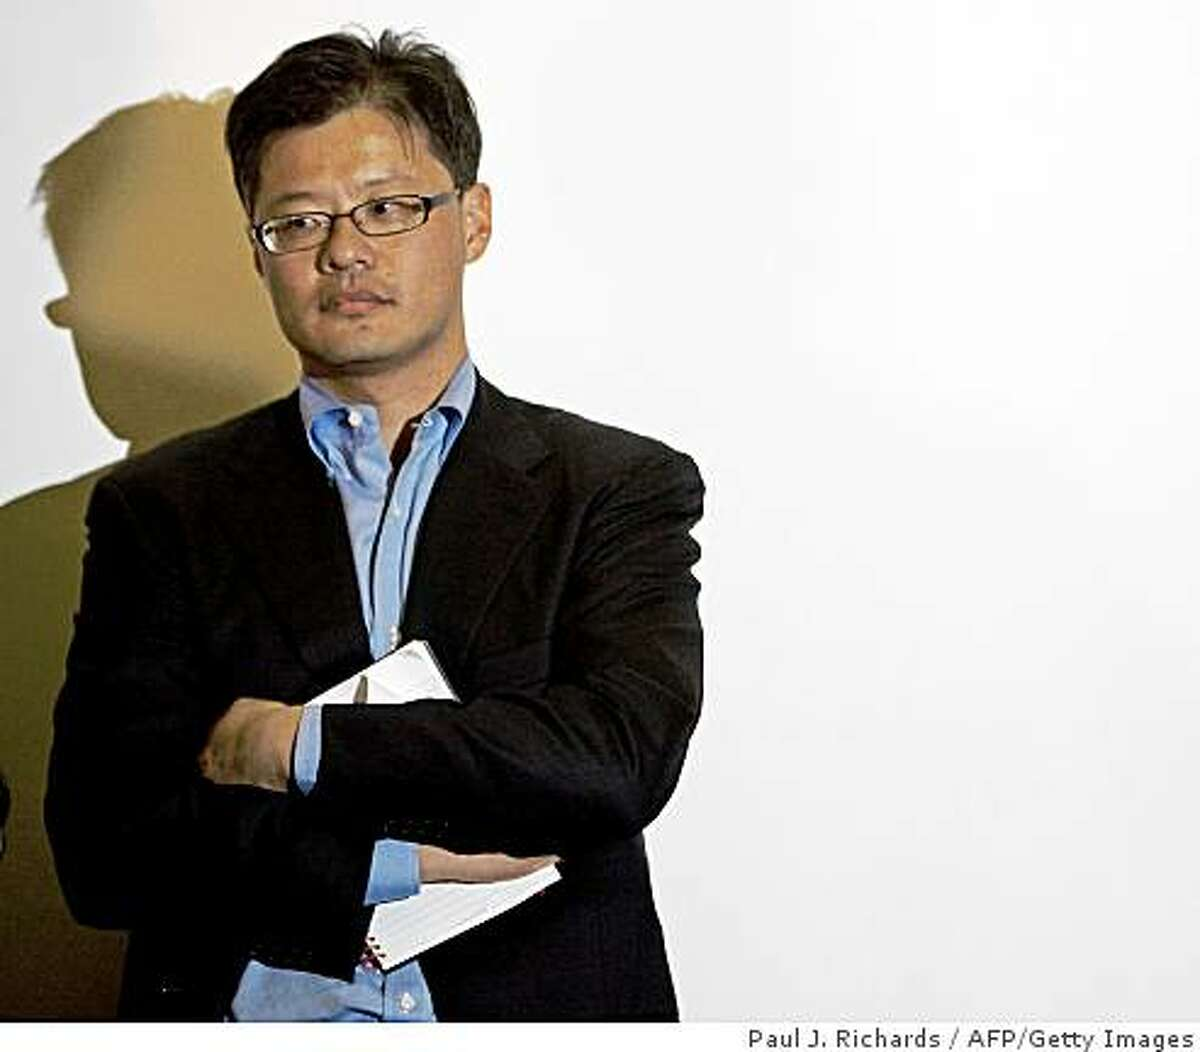 (FILES)Jerry Yang, Co-Founder & CEO of Yahoo! Inc., stands next to a white screen as he waits to answer questions from students and the media at the lecturn on April 3, 2008 at Georgetown University's Healy Hall in Washington, DC. Yang said on May 29, 2008 that Microsoft is